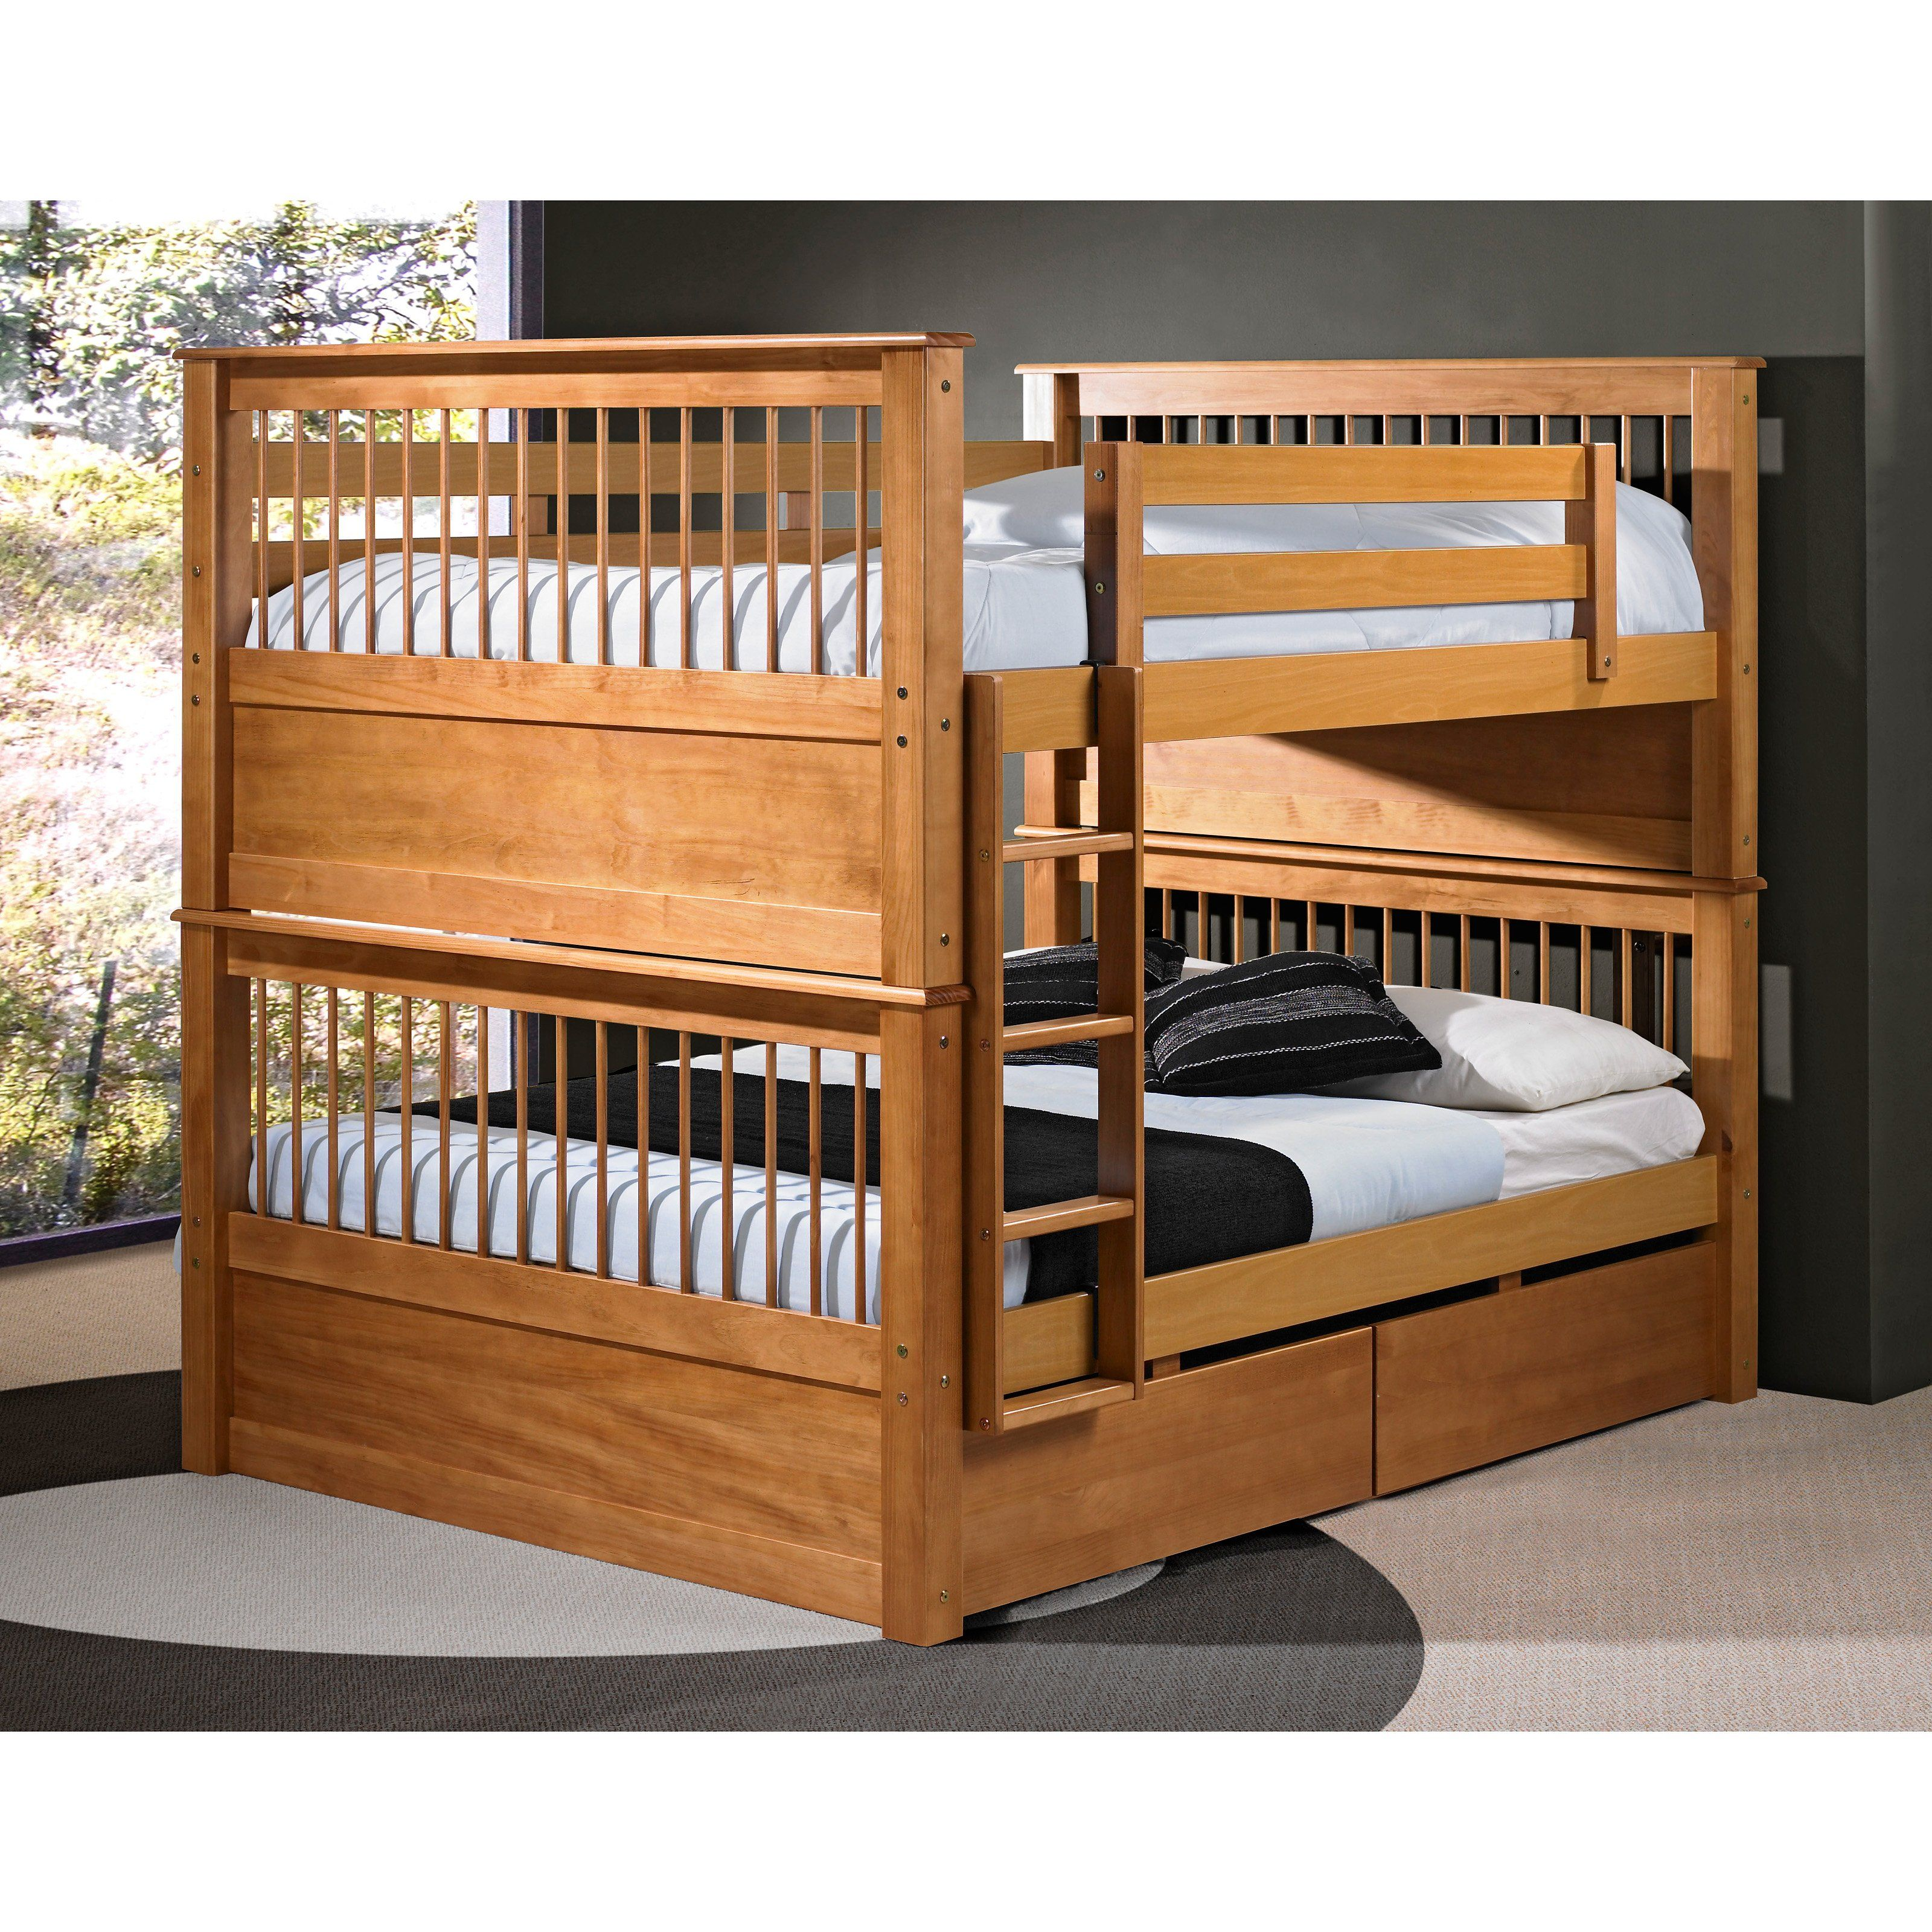 Cool Bunk Beds Cool Full Over Full Bunk Beds For The Boys Kids